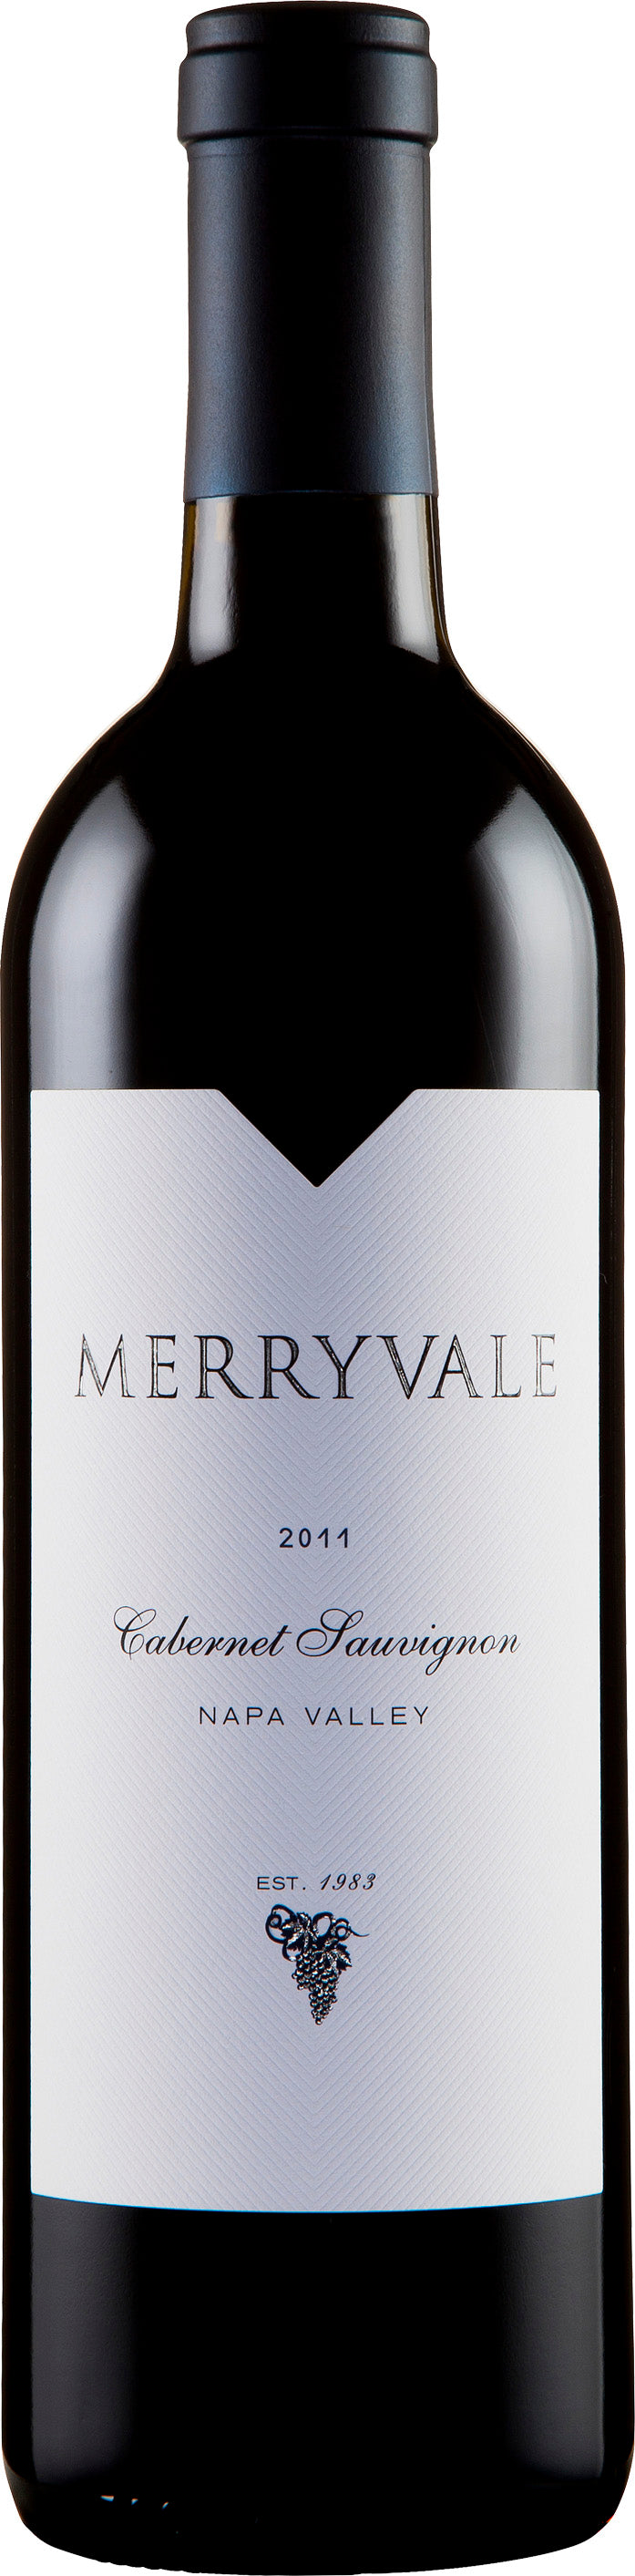 Buy Wines in Singapore - Merryvale Cabernet Sauvignon